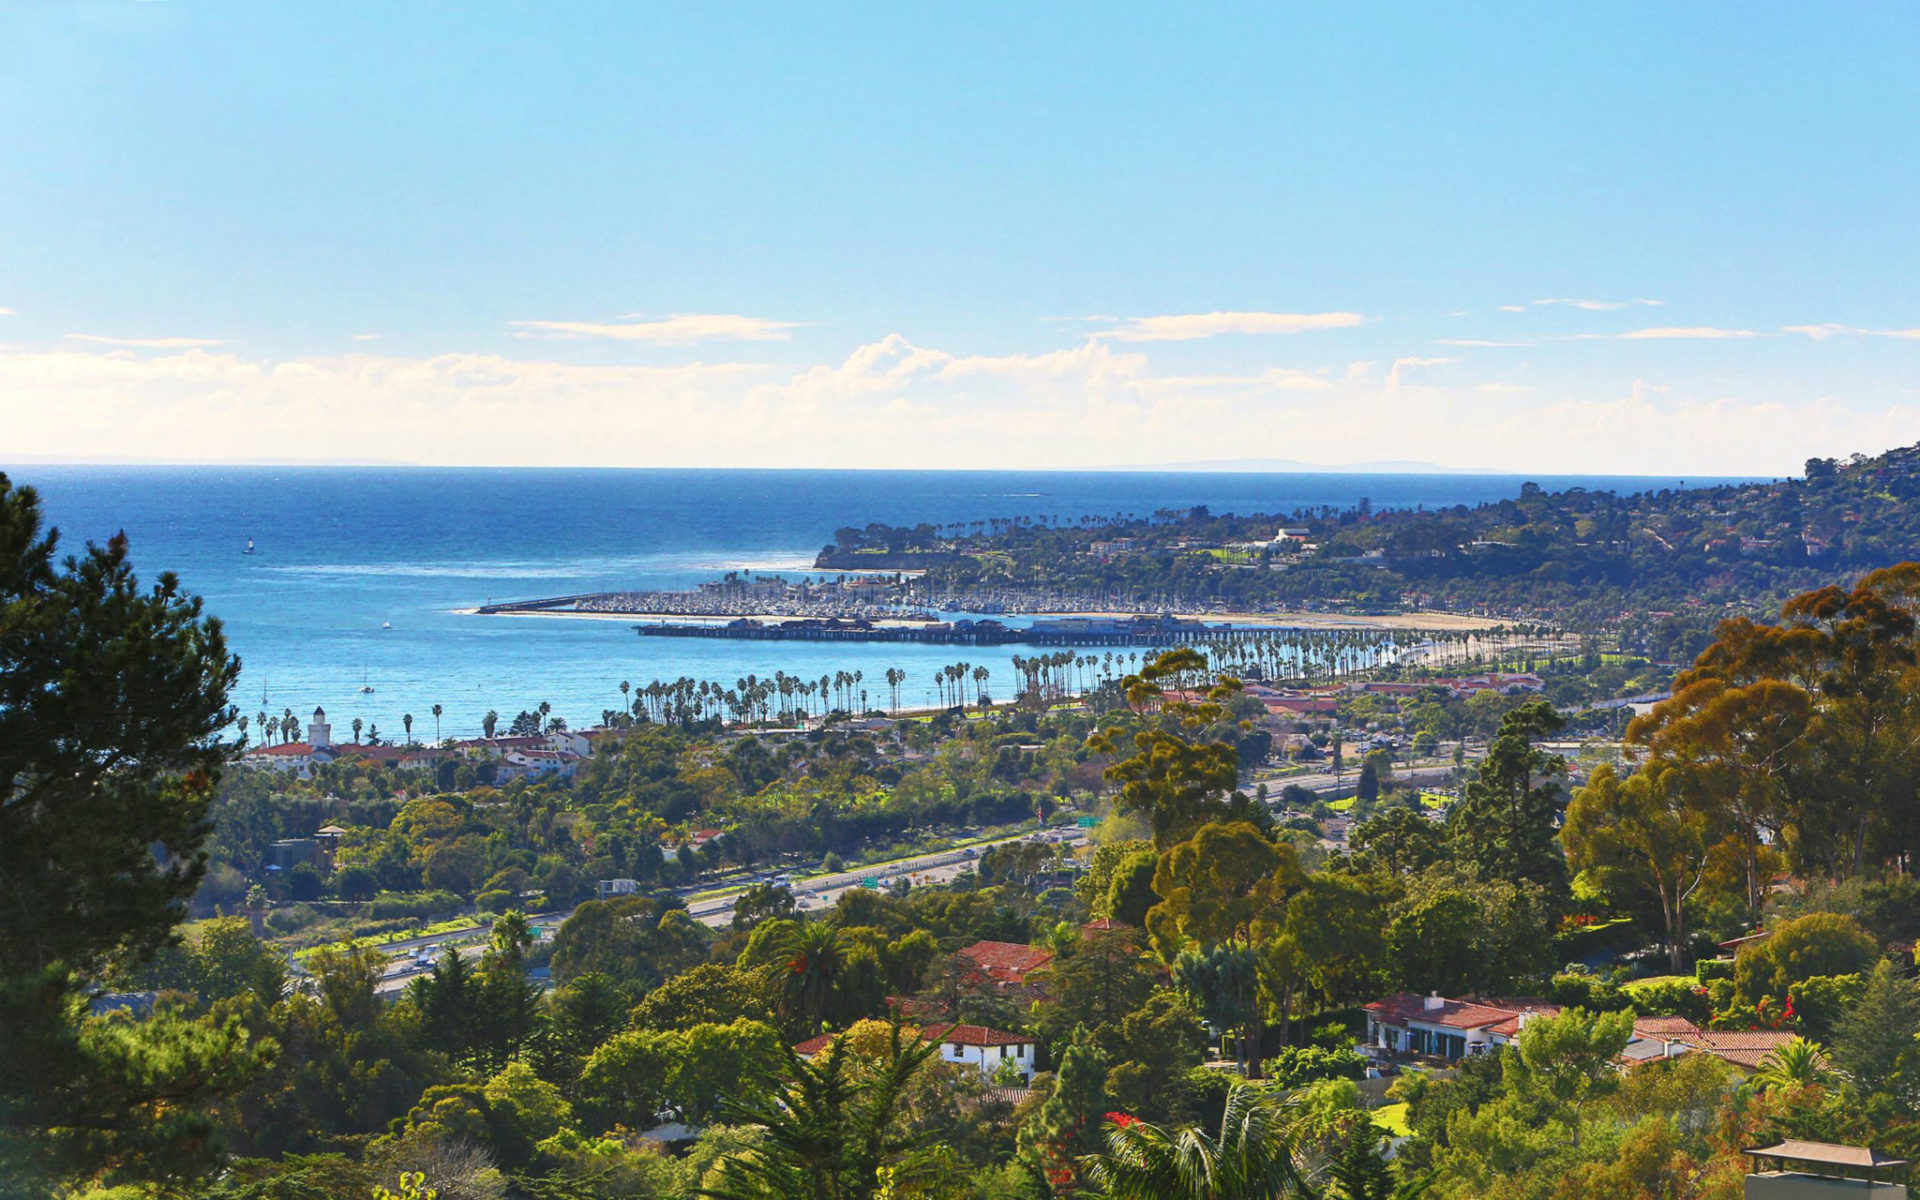 A panorama of Santa Barbara